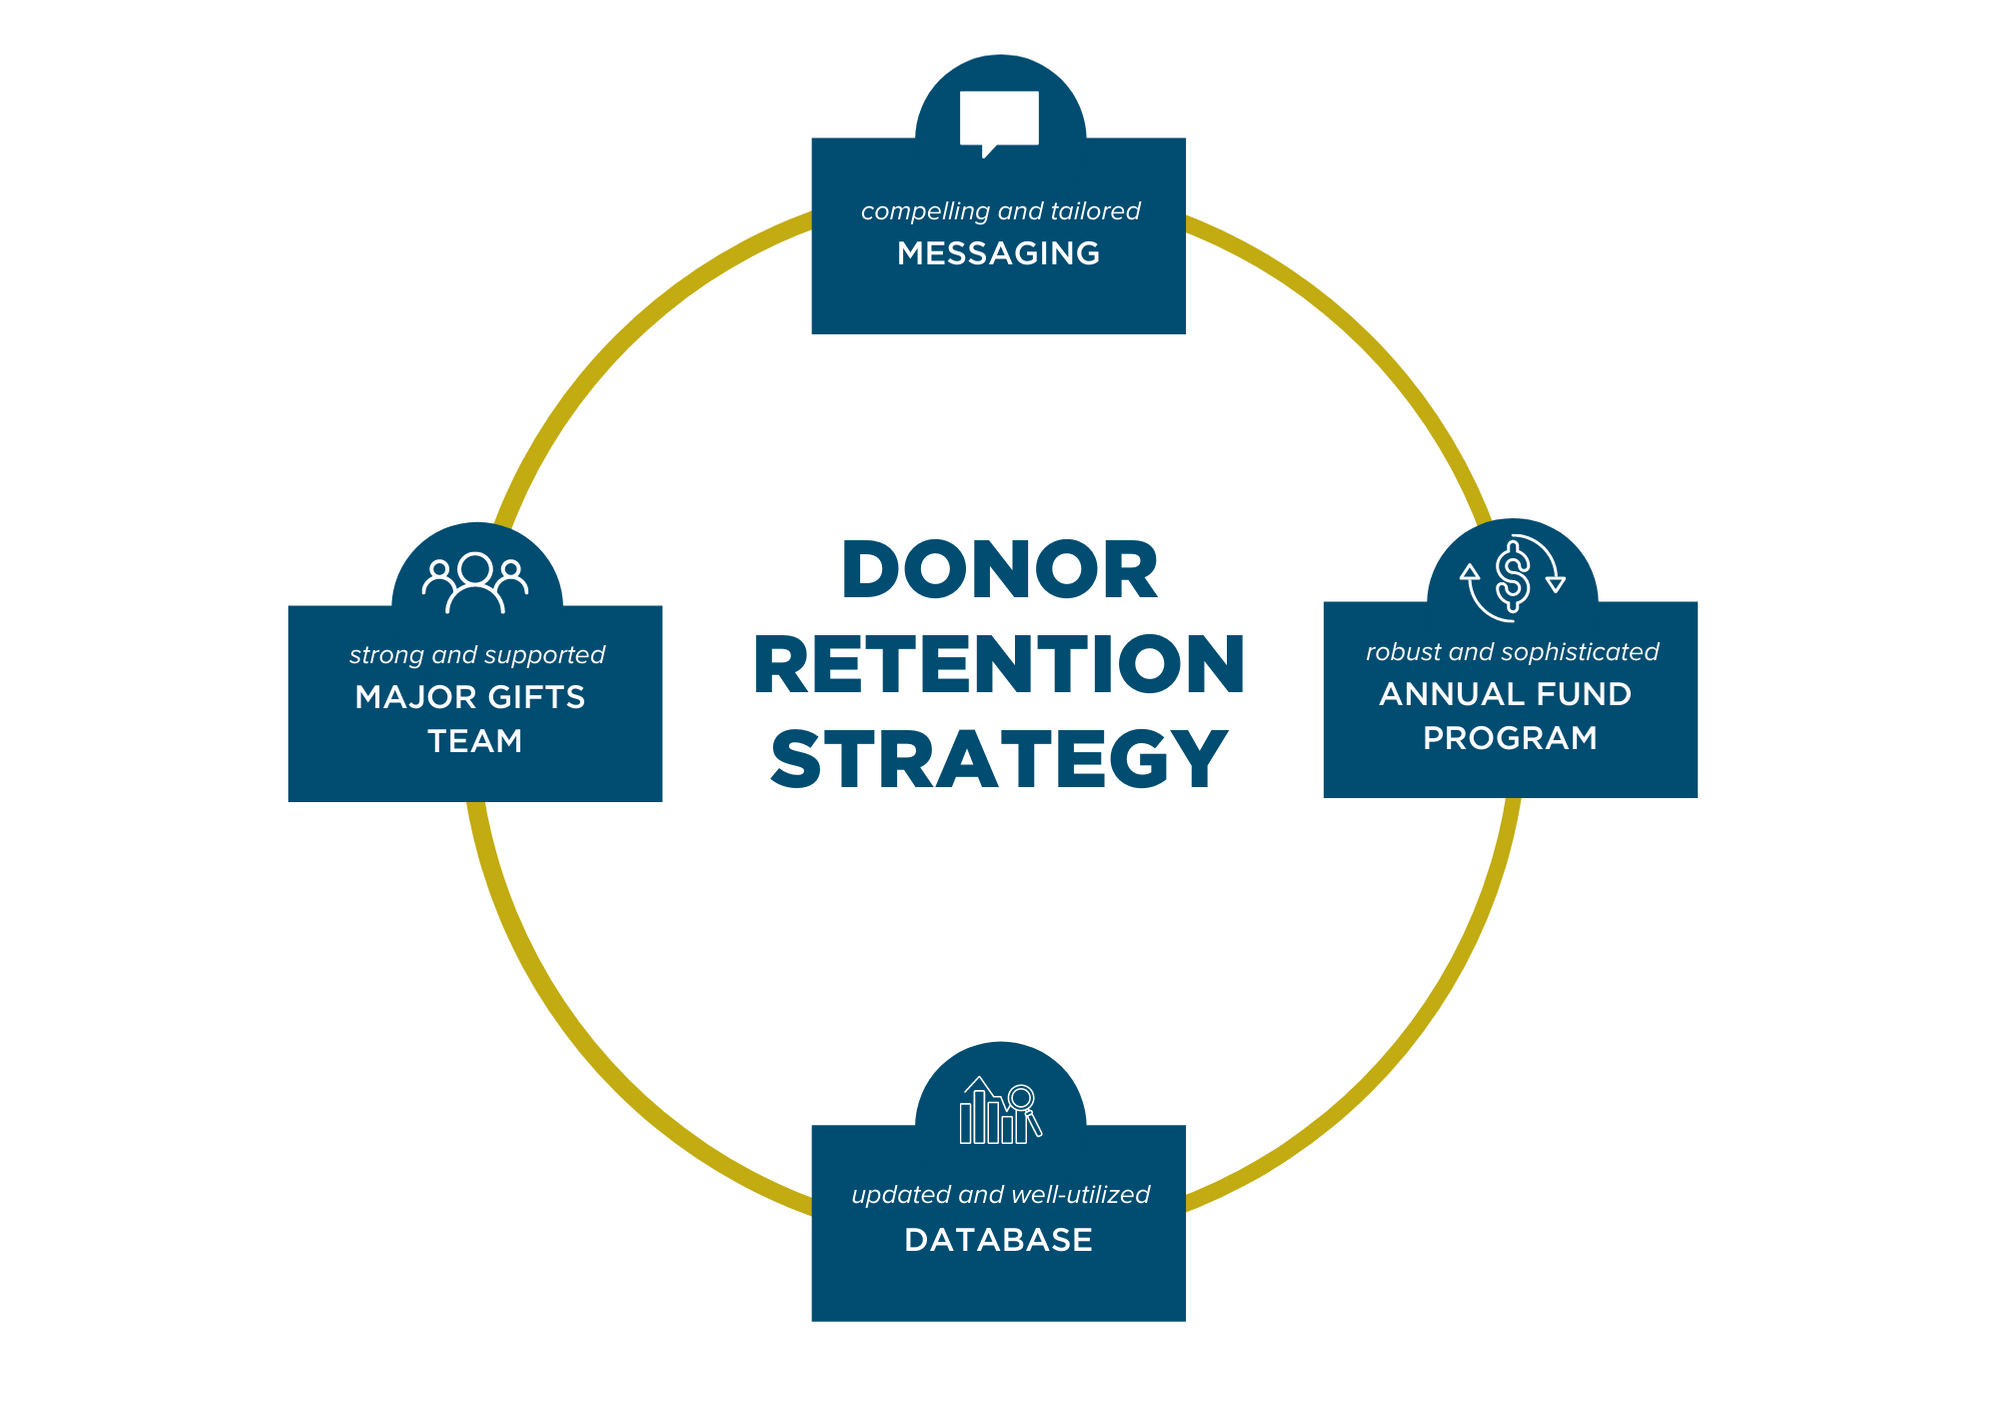 Donor Retention Strategy graphic